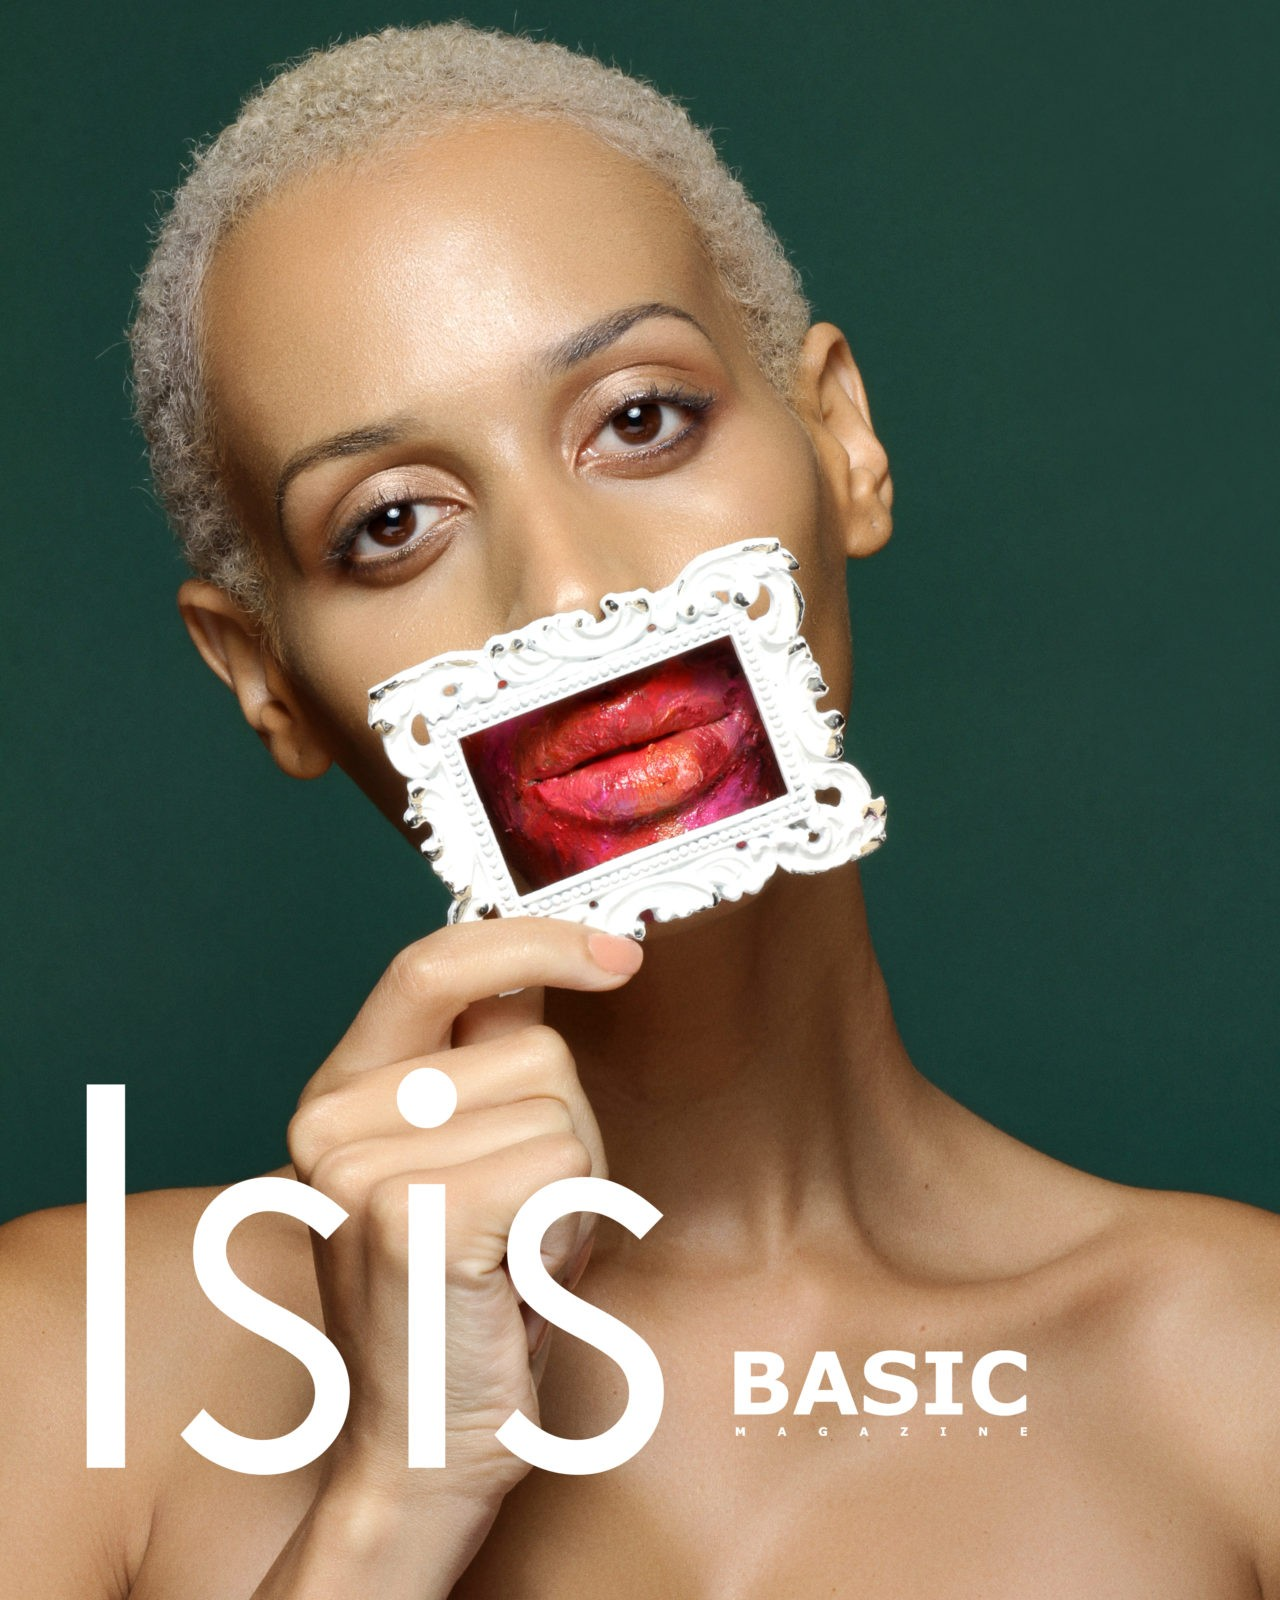 basic-magazine-isis-slay-americas-top-model-4